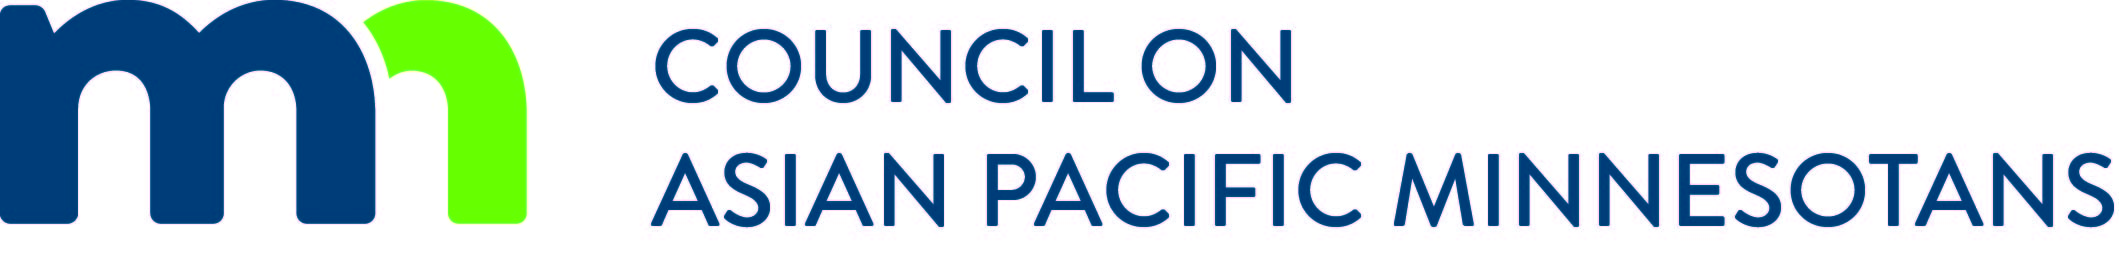 Council on Asian Pacific Minnesotans printed logo